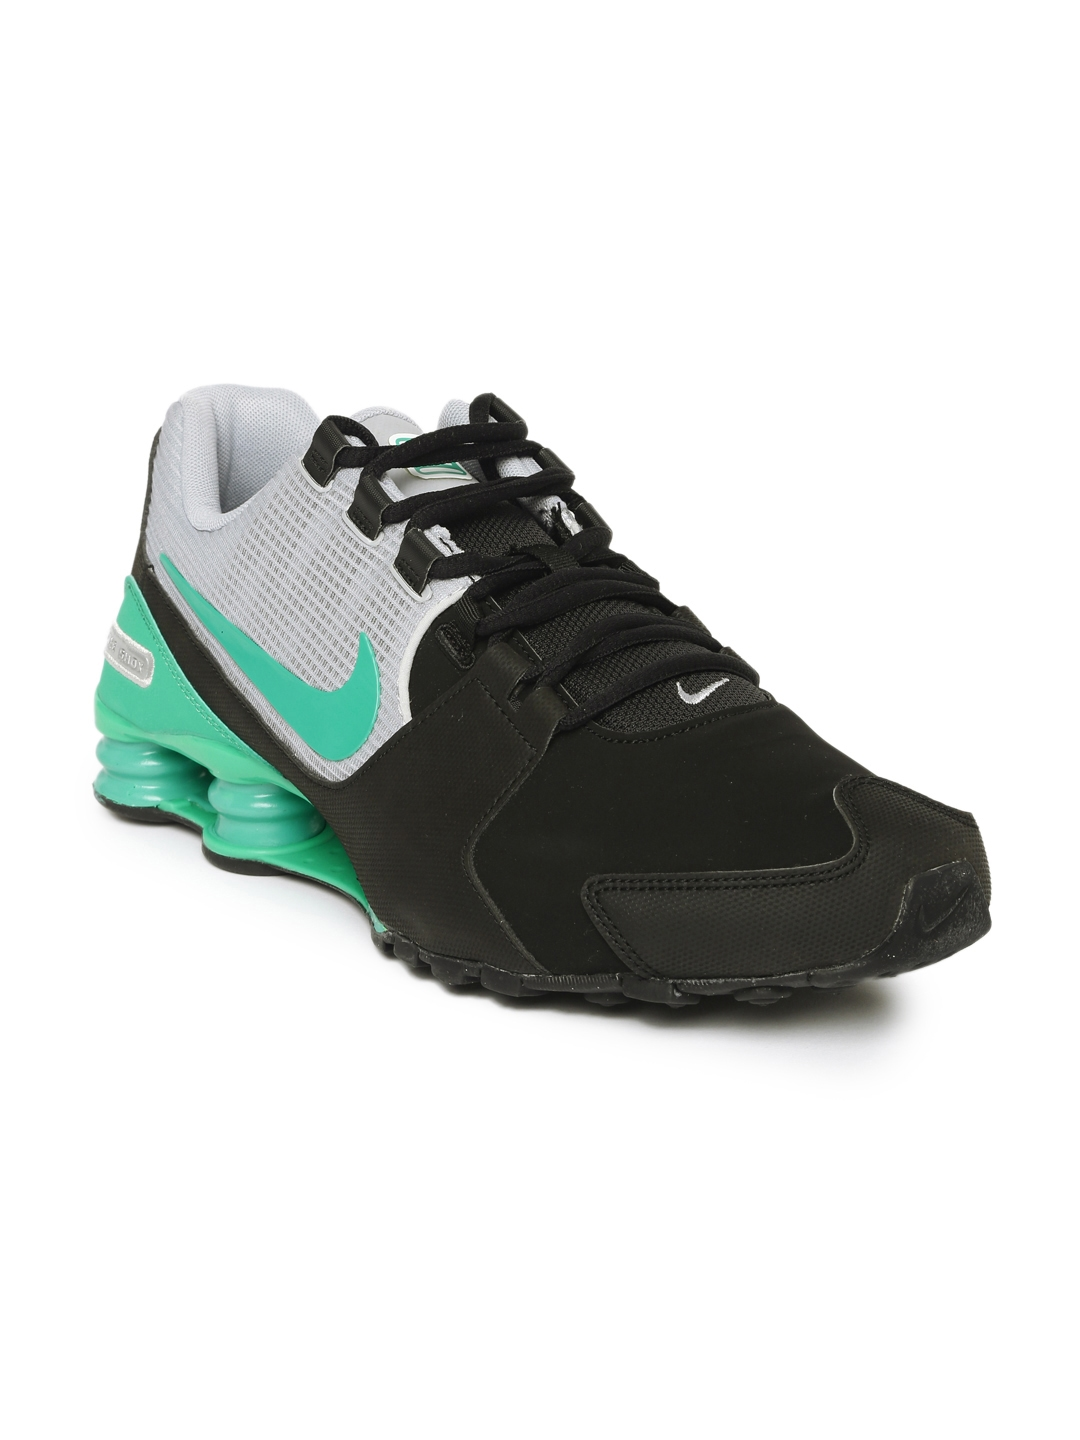 the best attitude f84a7 2a84f Buy Nike Men Black SHOX AVENUE LTR Sneakers - Casual Shoes for Men ...